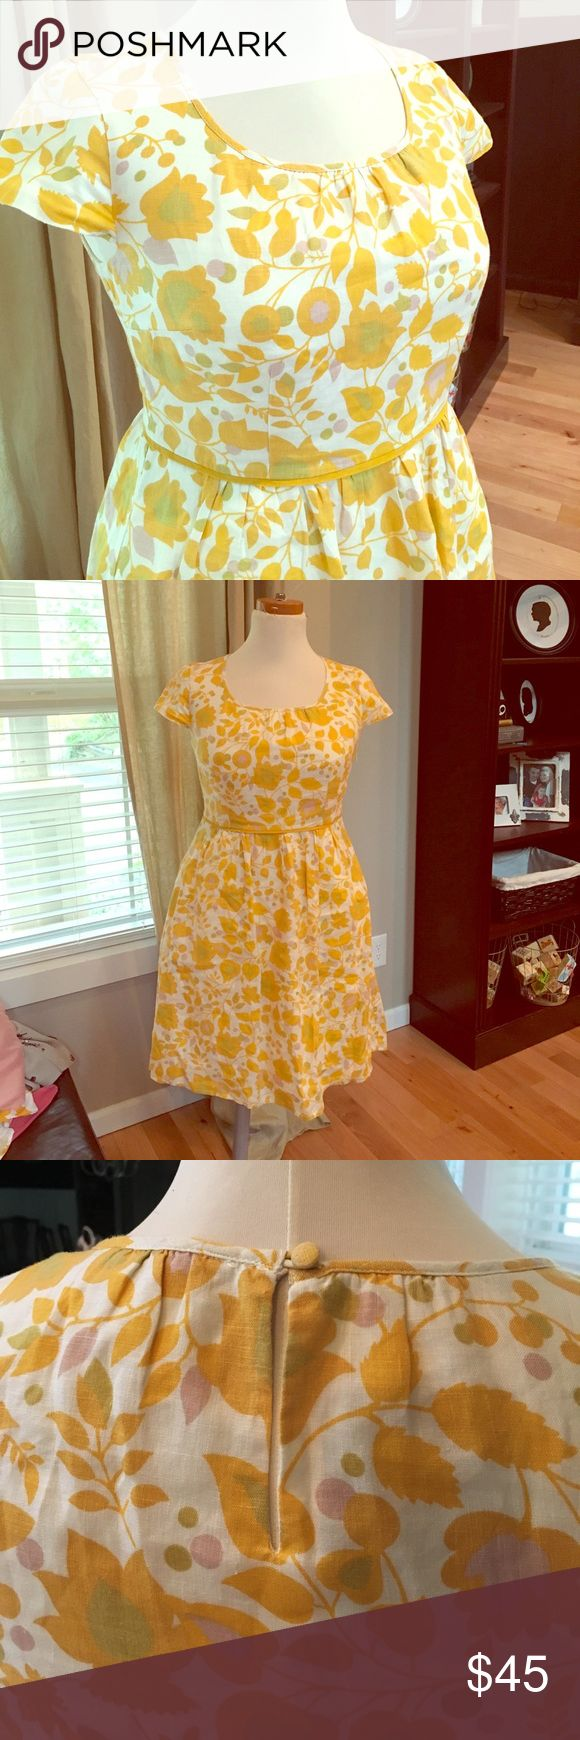 Boden linen summer dress in soft yellow floral 8 Beautiful dress for spring/summer, flattering, classy and fun, this is Boden at it's best! US sz 8. Fully lined and it has pockets  Make it yours! And check out my other listings for great dresses! I love to bundle! Boden Dresses Midi